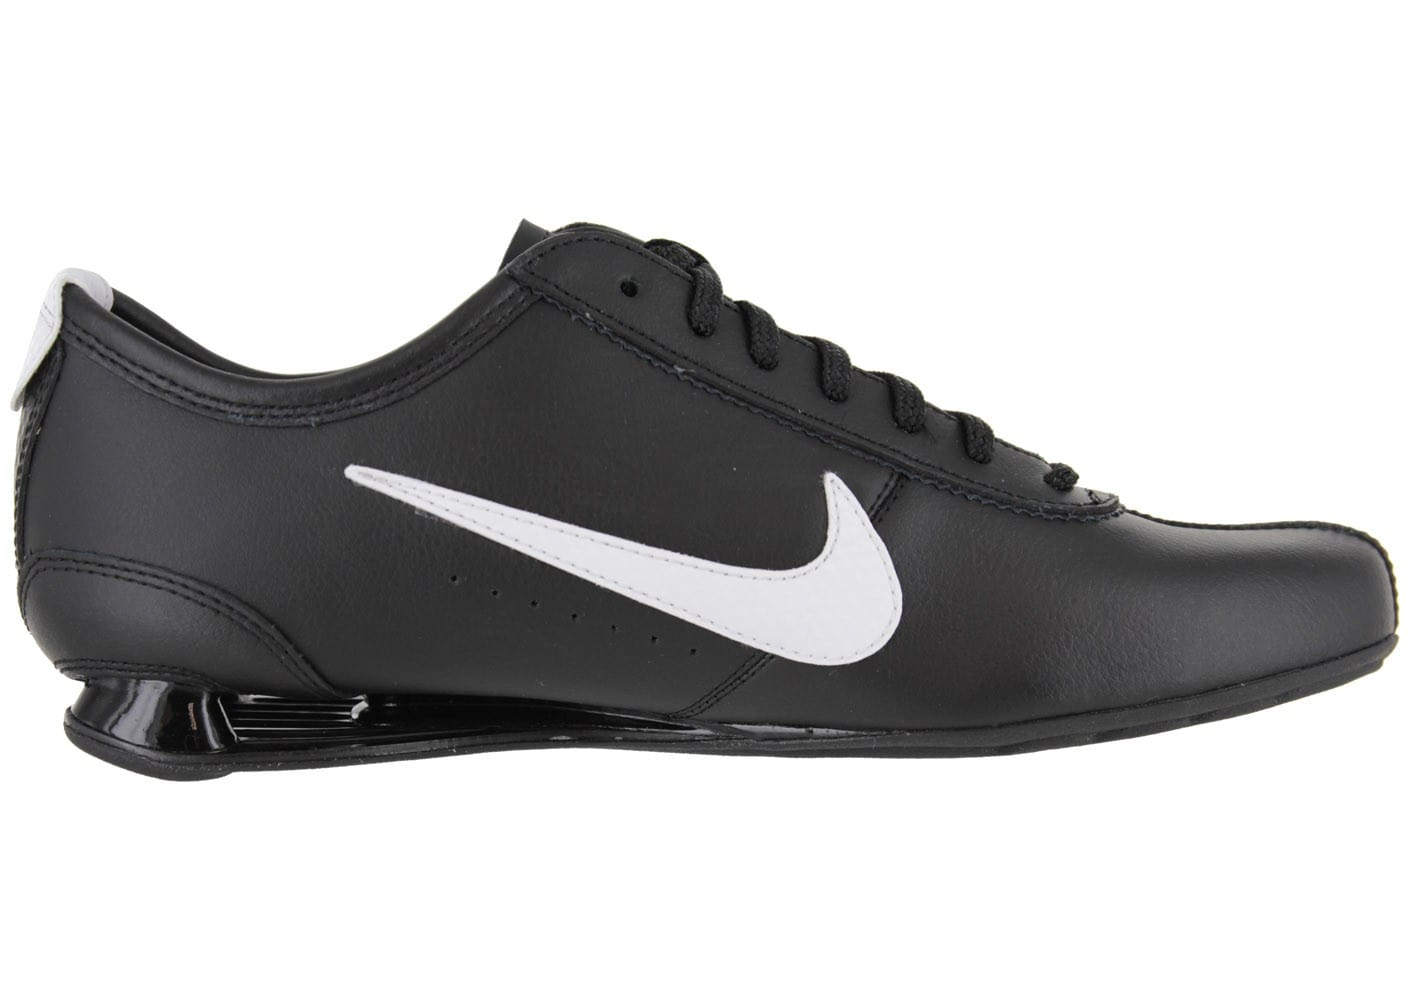 nike Nike Prix Shox R5 Rivalry R3 Chaussure Homme R4 HID29WEY